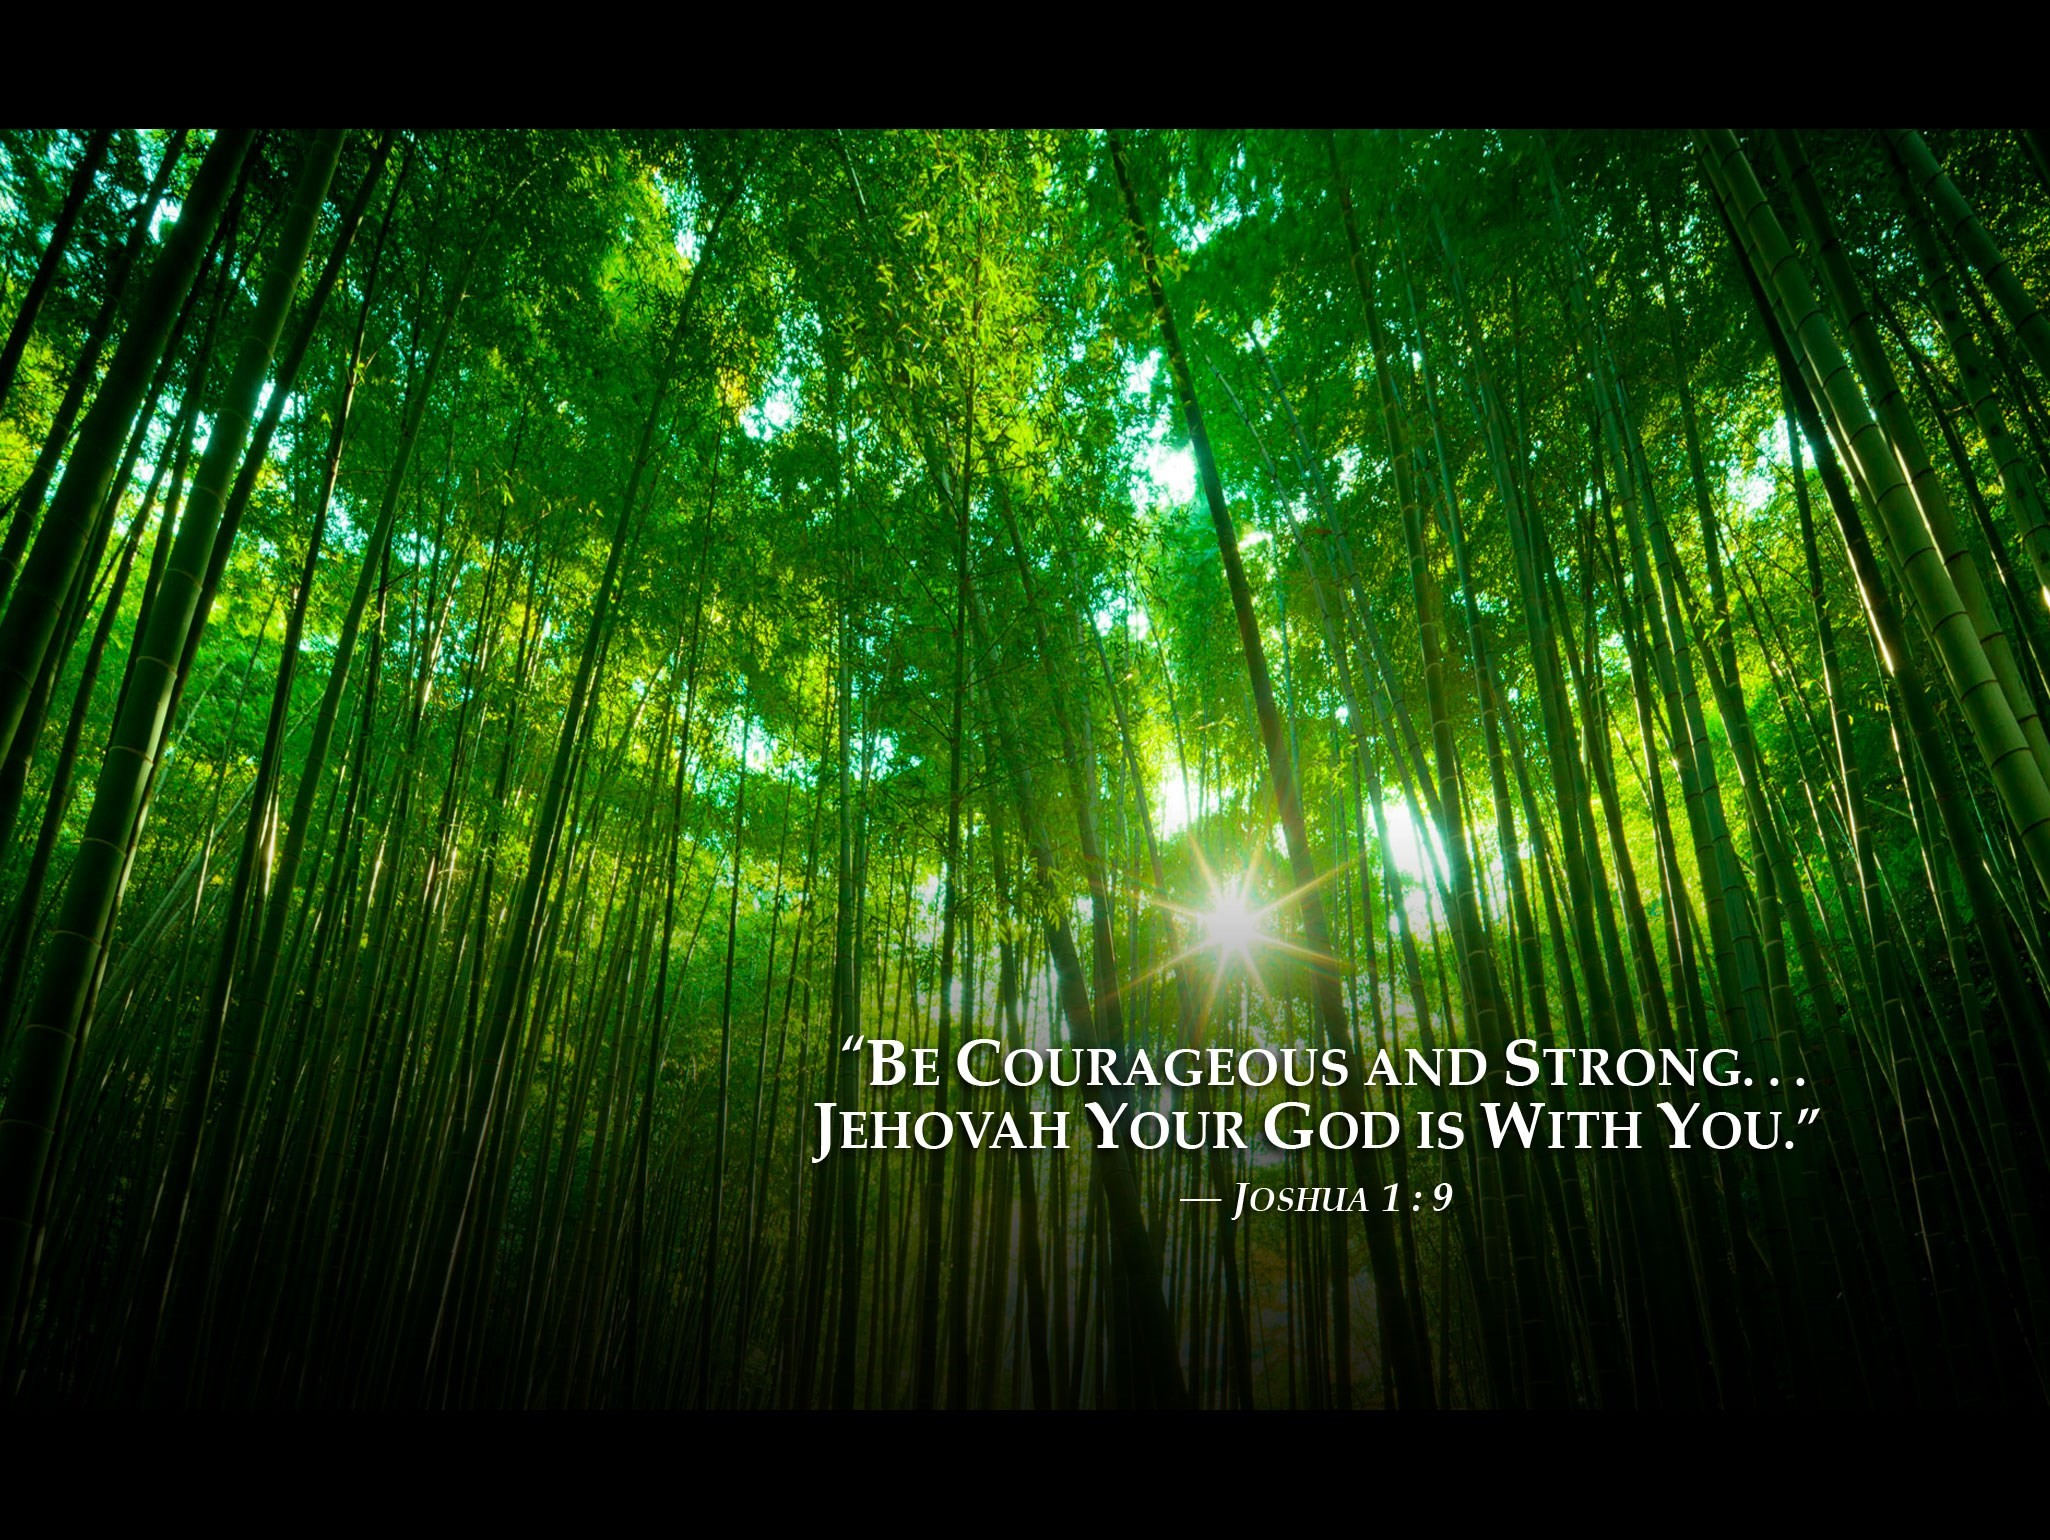 Jehovahs Witnesses Wallpaper 69 images 2050x1540